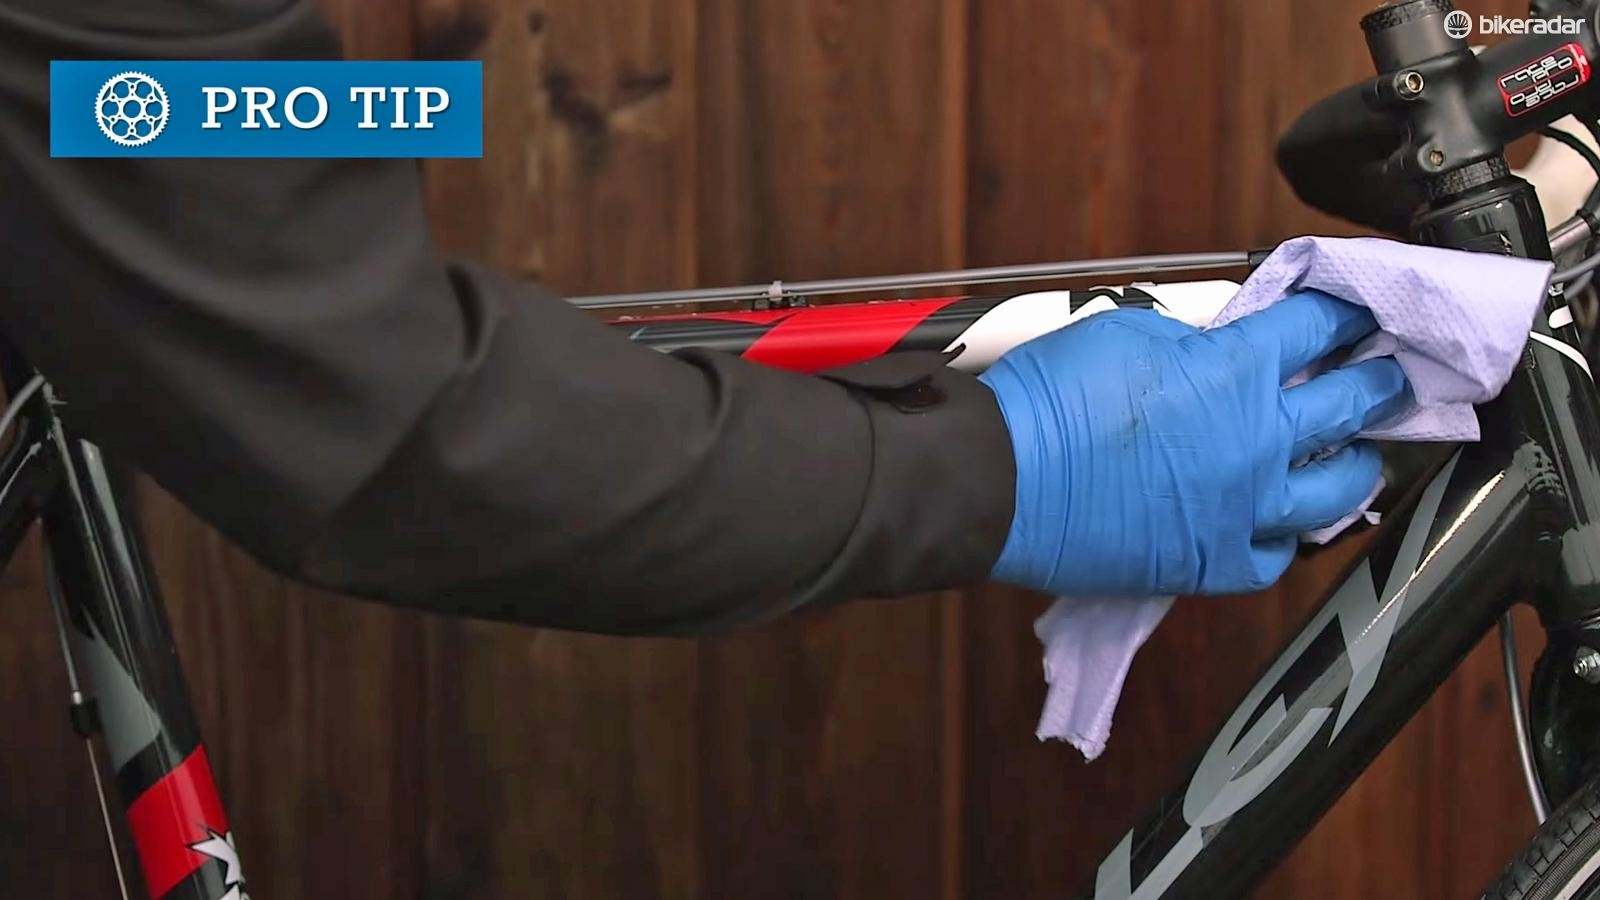 Buff with PTFE spray or silicone bike polish to give a lustrous shine